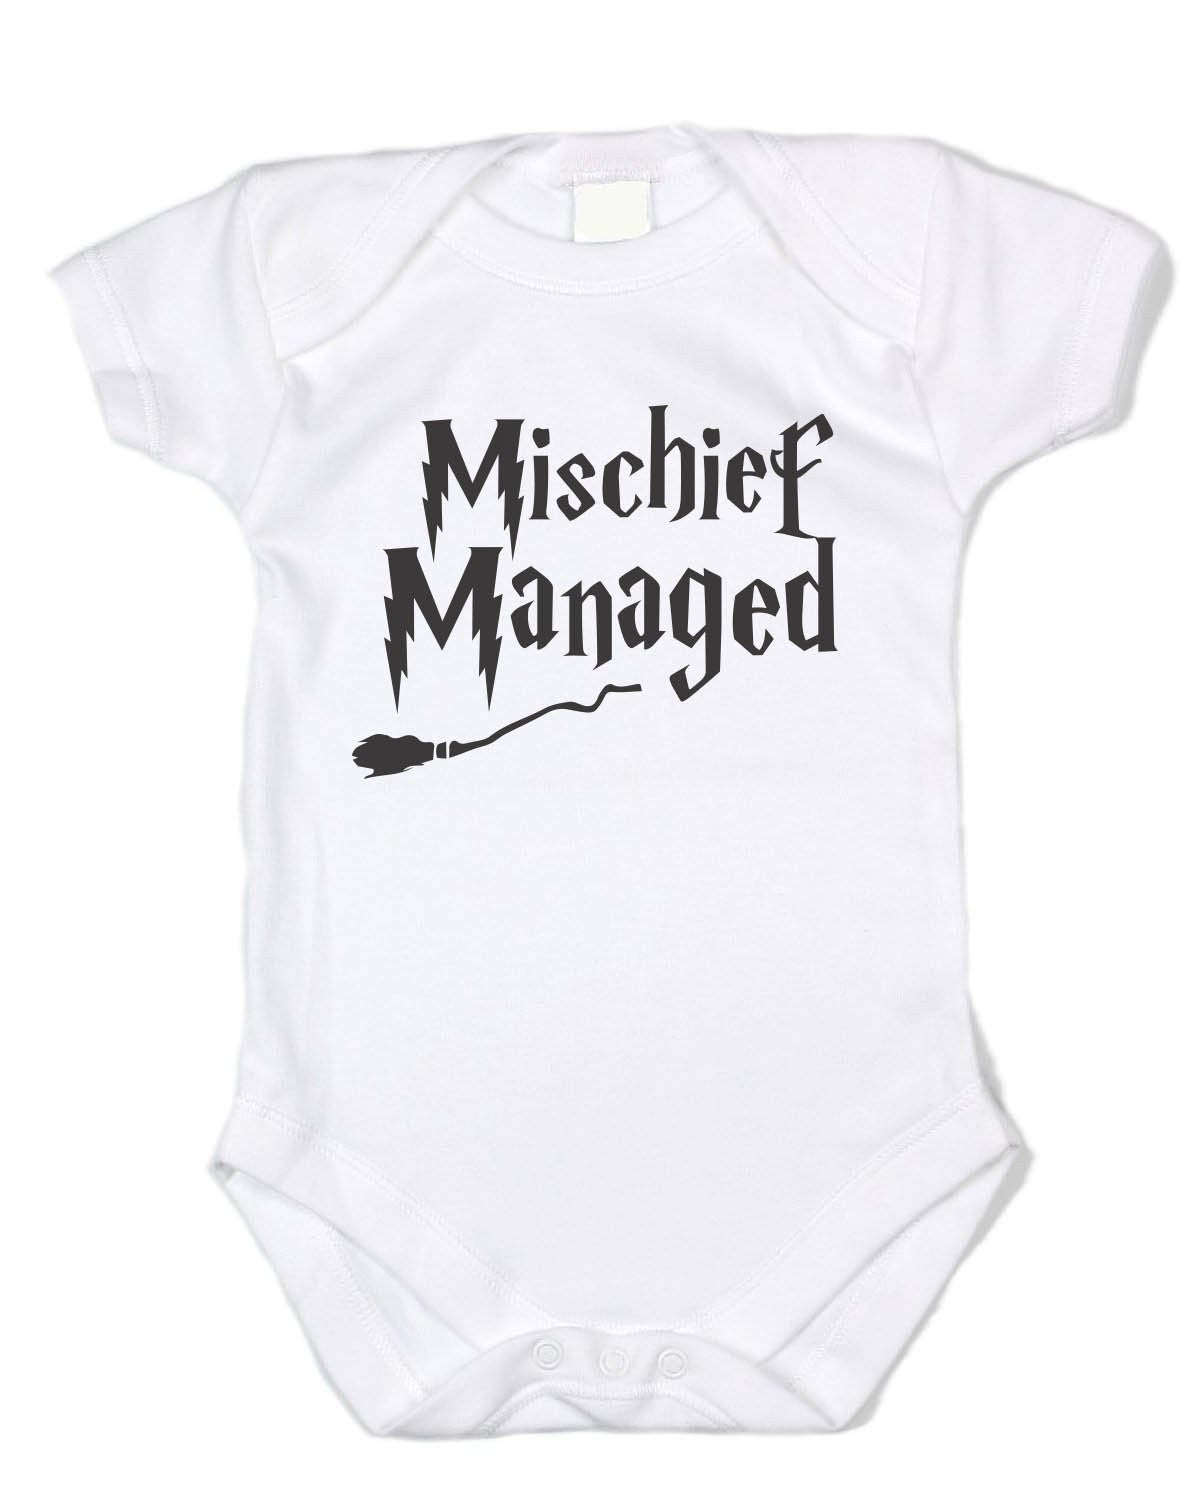 """Mishchief Managed"" Harry Clothing - Black Text"